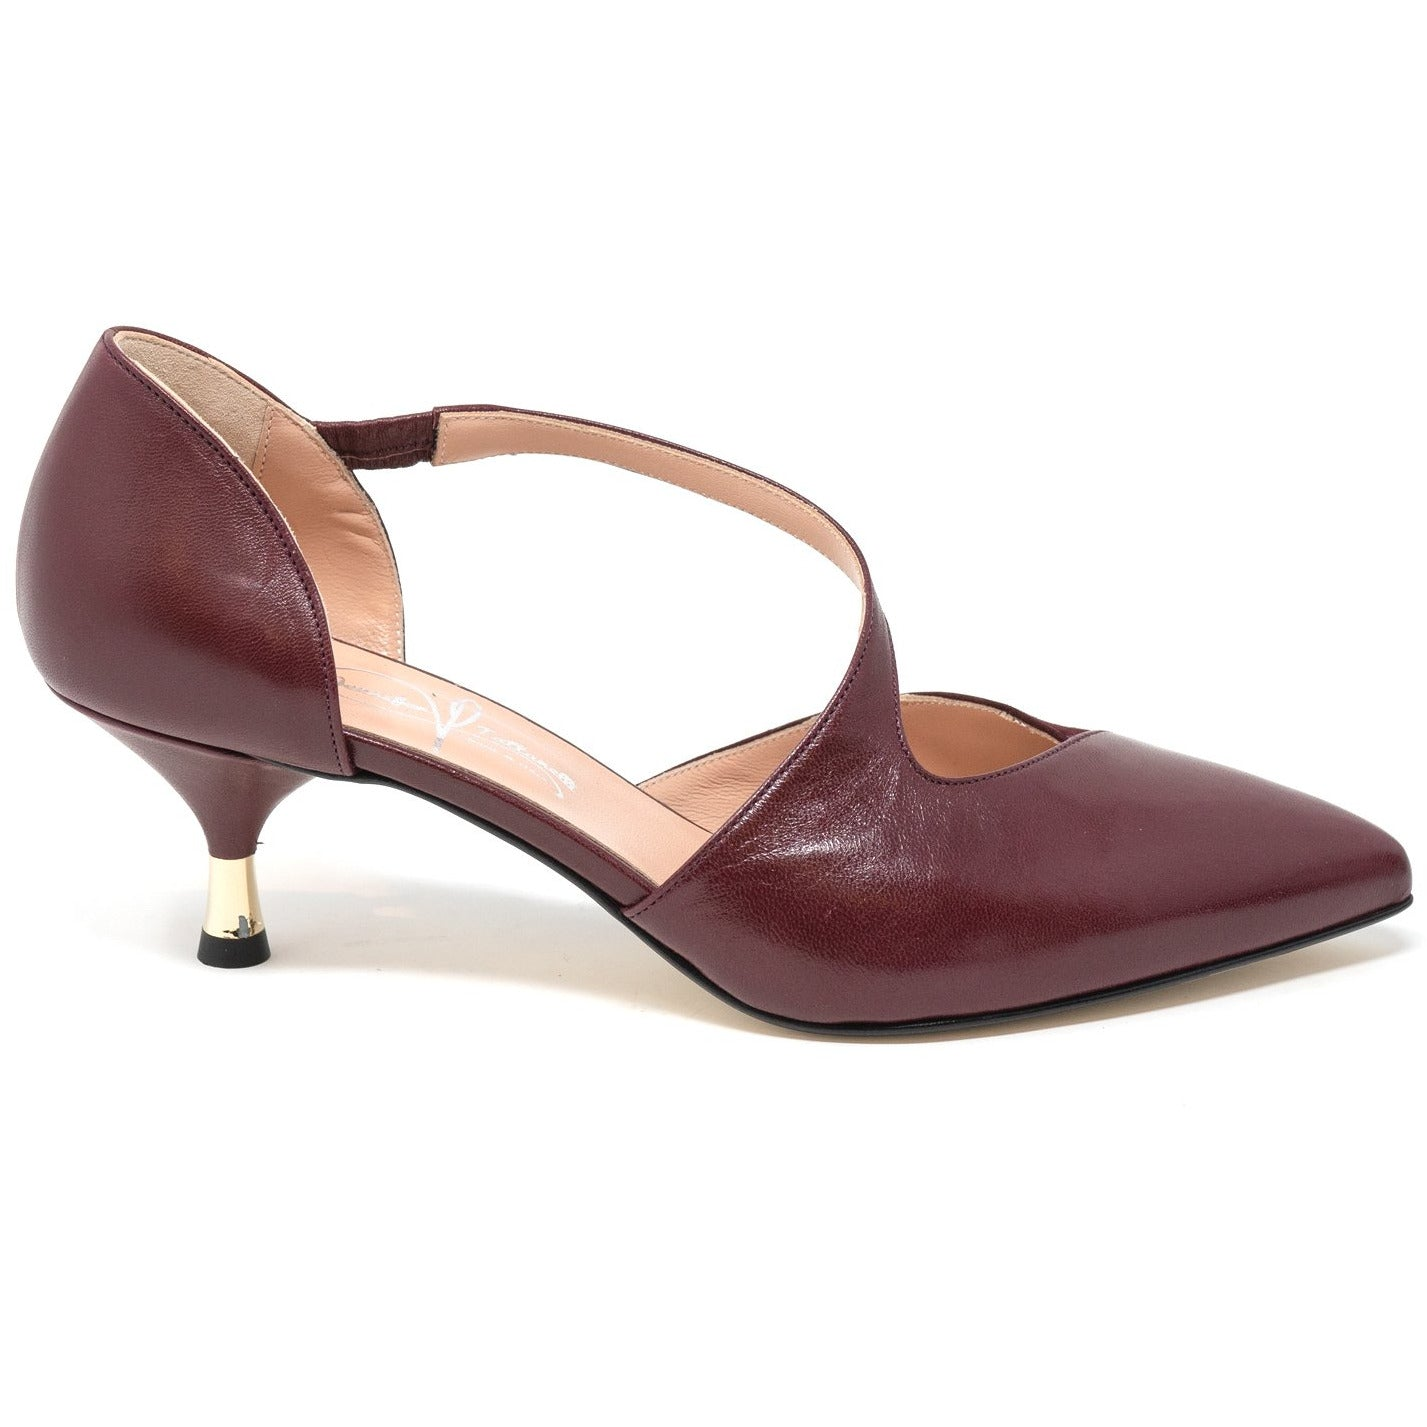 DDL4504 T50 Women Pumps - Jennifer Tattanelli